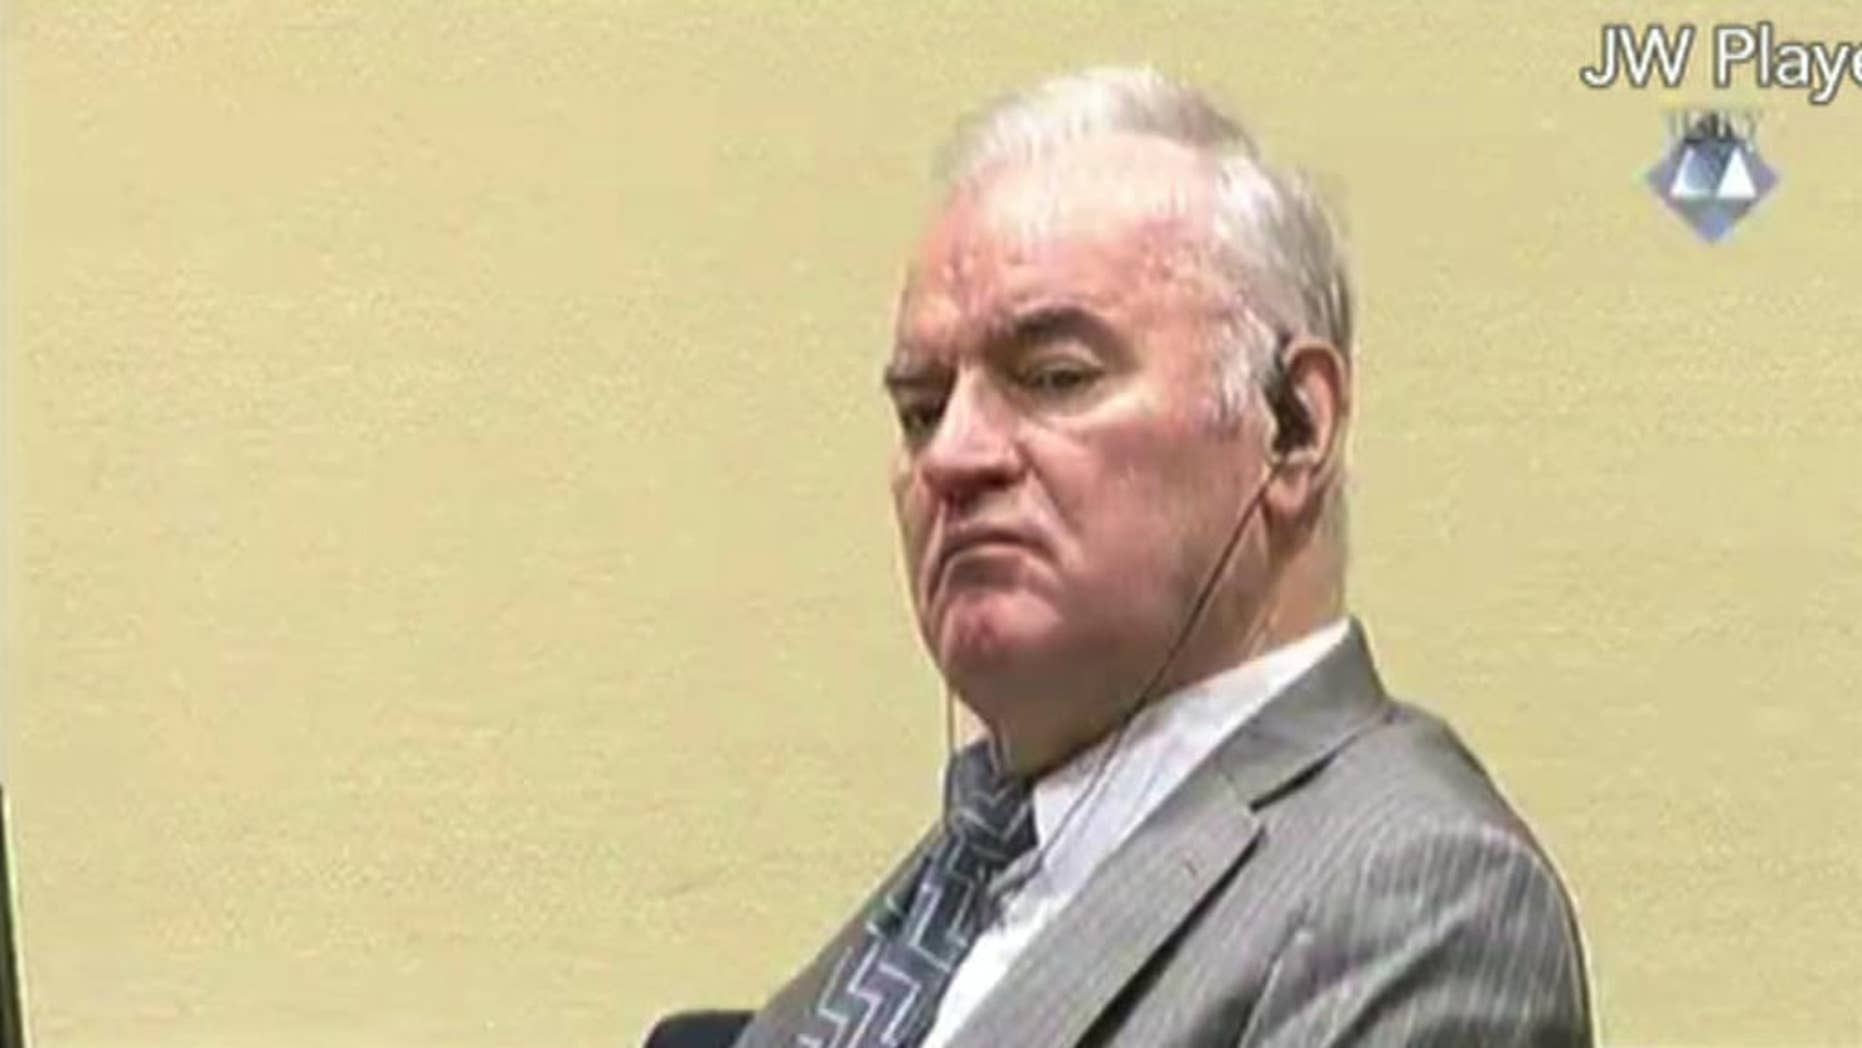 FILE - This is a Monday Dec. 5, 2016 file photo of Former Bosnian Serb military chief General Ratko Mladic looks across the court room at the International Criminal Tribunal for the Former Yugoslavia in the Hague Netherlands in this image taken from video. Gen. Ratko Mladic's defense team called on United Nations judges Tuesday Dec. 13, 2016  to acquit the former Bosnian Serb military chief, arguing that prosecutors failed to prove he orchestrated atrocities by Serb forces under his command during the Bosnian War.   (ICTY Video, File via AP)